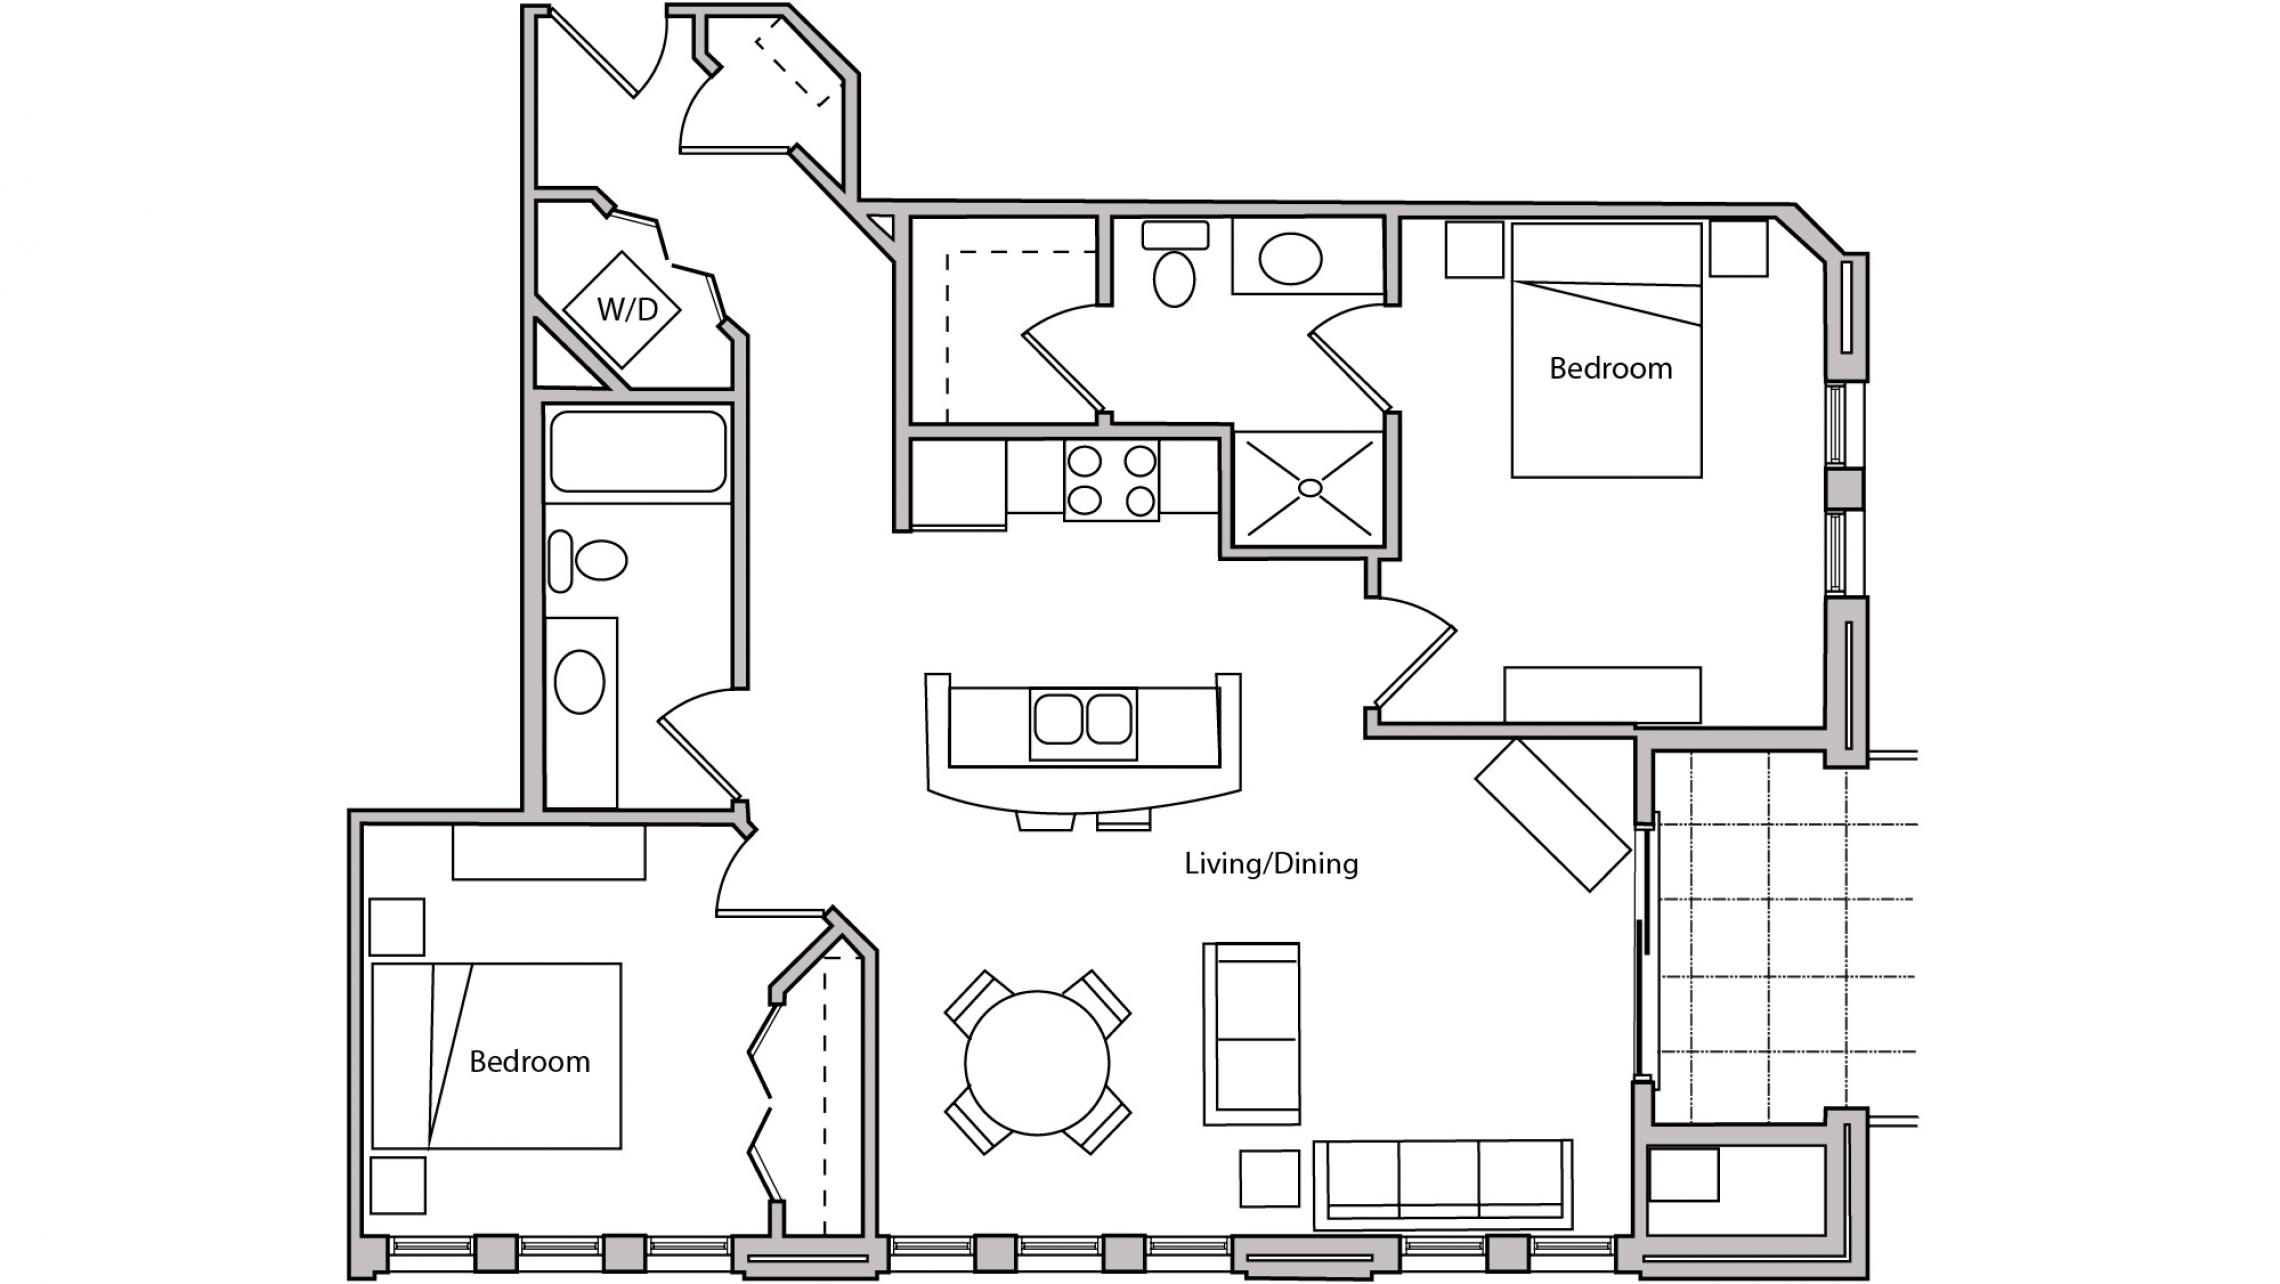 ULI The Depot 1-204 - Two Bedroom, Two Bathroom